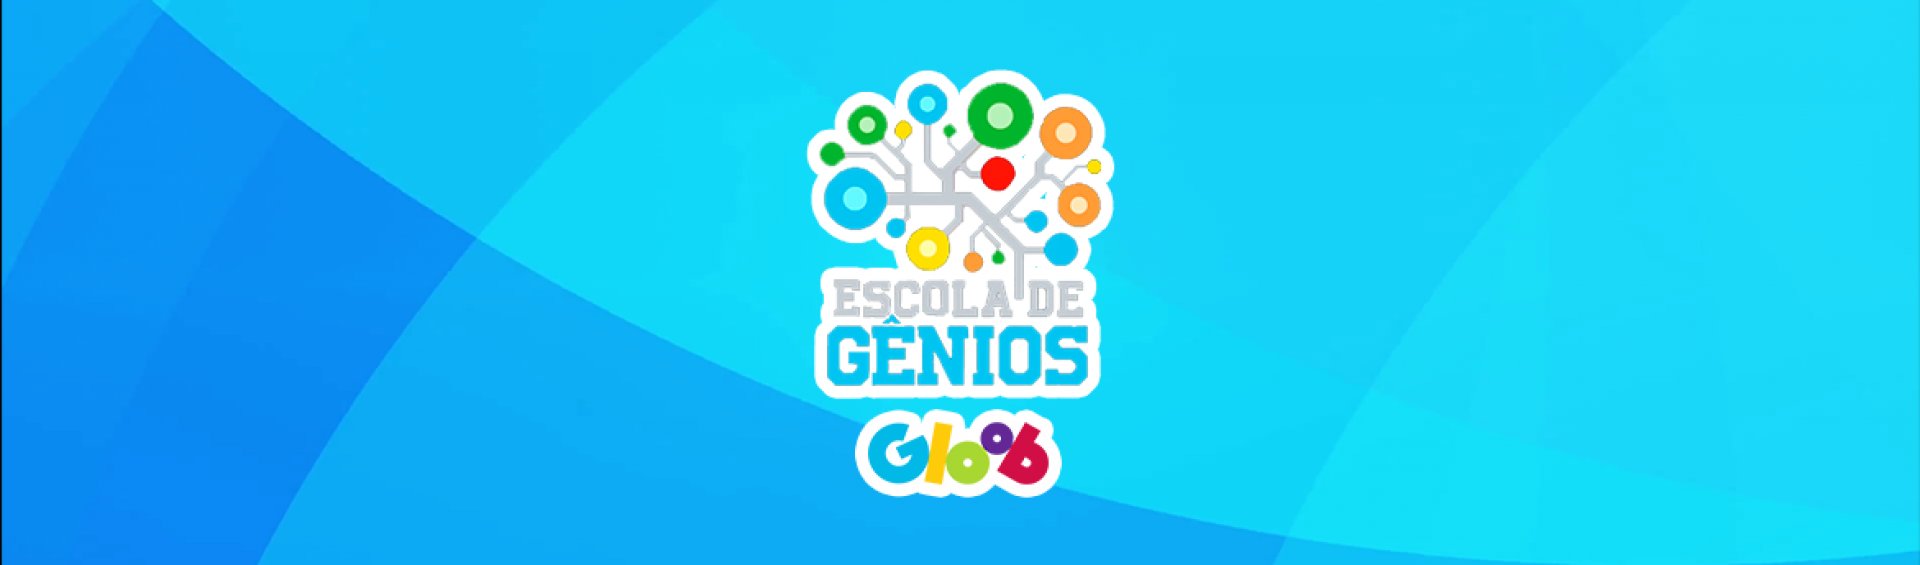 Escola de Genios Gloob produtora de audio sp